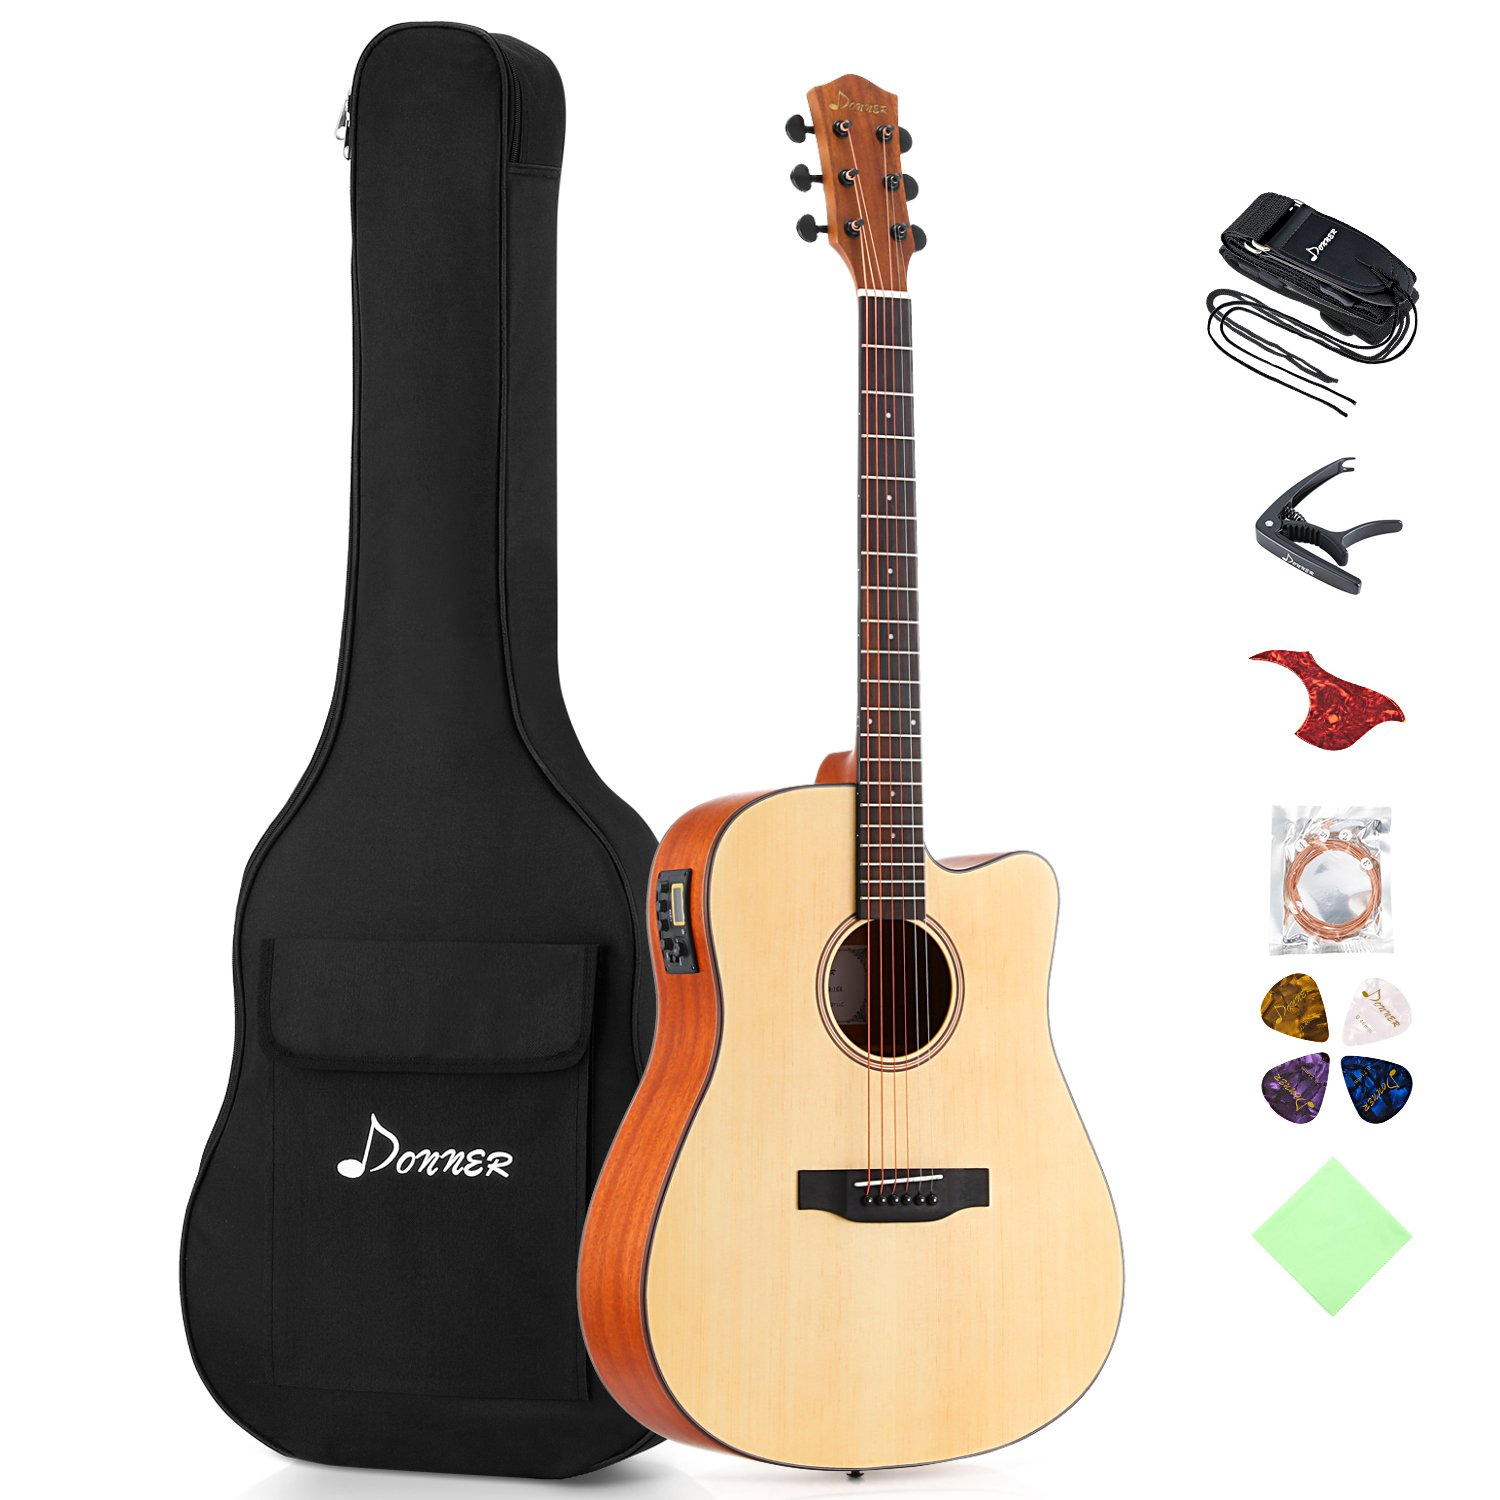 Donner DAG-1CE Electric Acoustic Guitar Cutaway 41'' Full-size Guitar Bundle Built-in Preamp with Bag Strap Tuner String by Donner